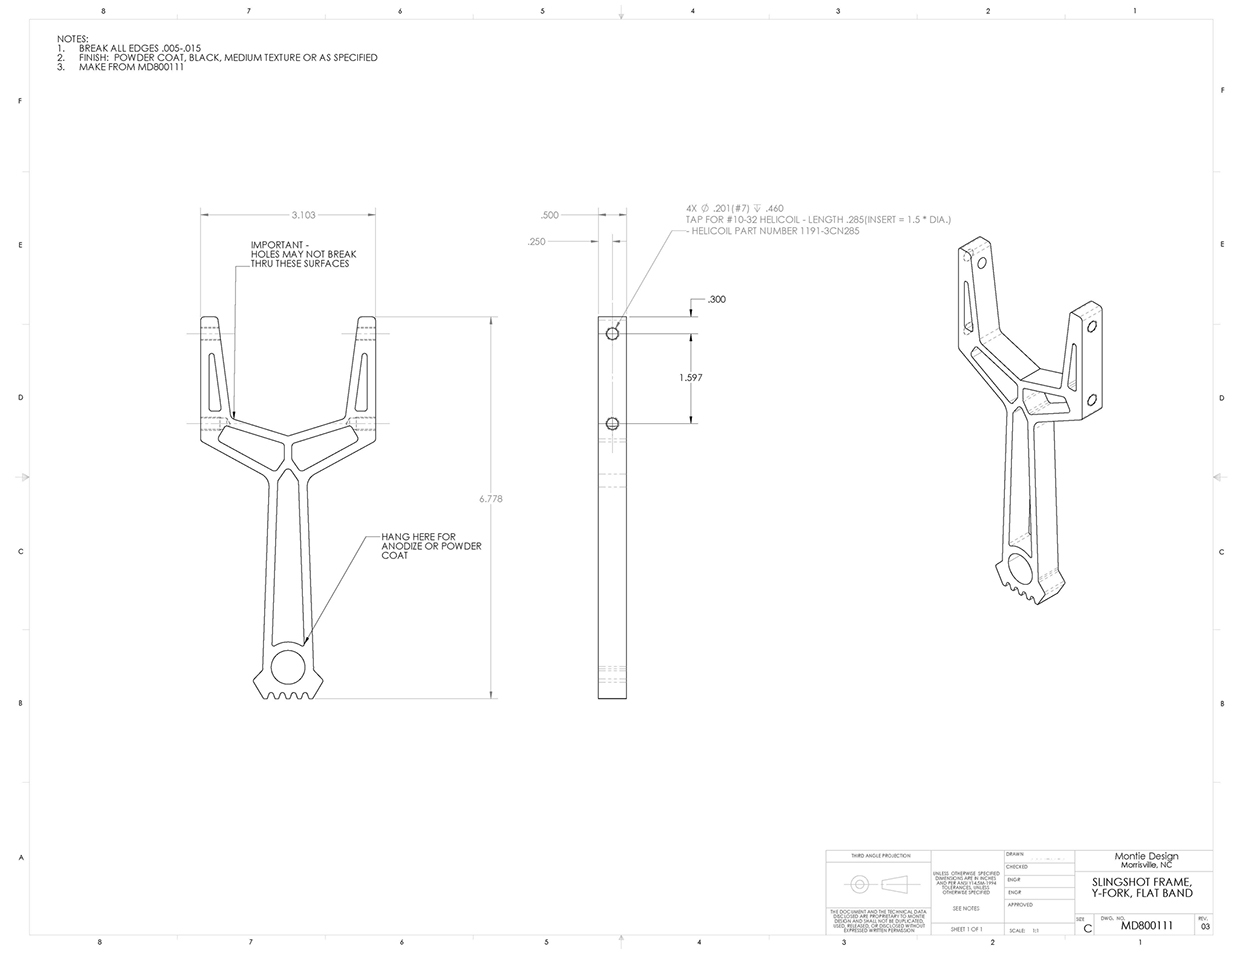 Wrench Cad Drawing Cad Drawing i Produced For